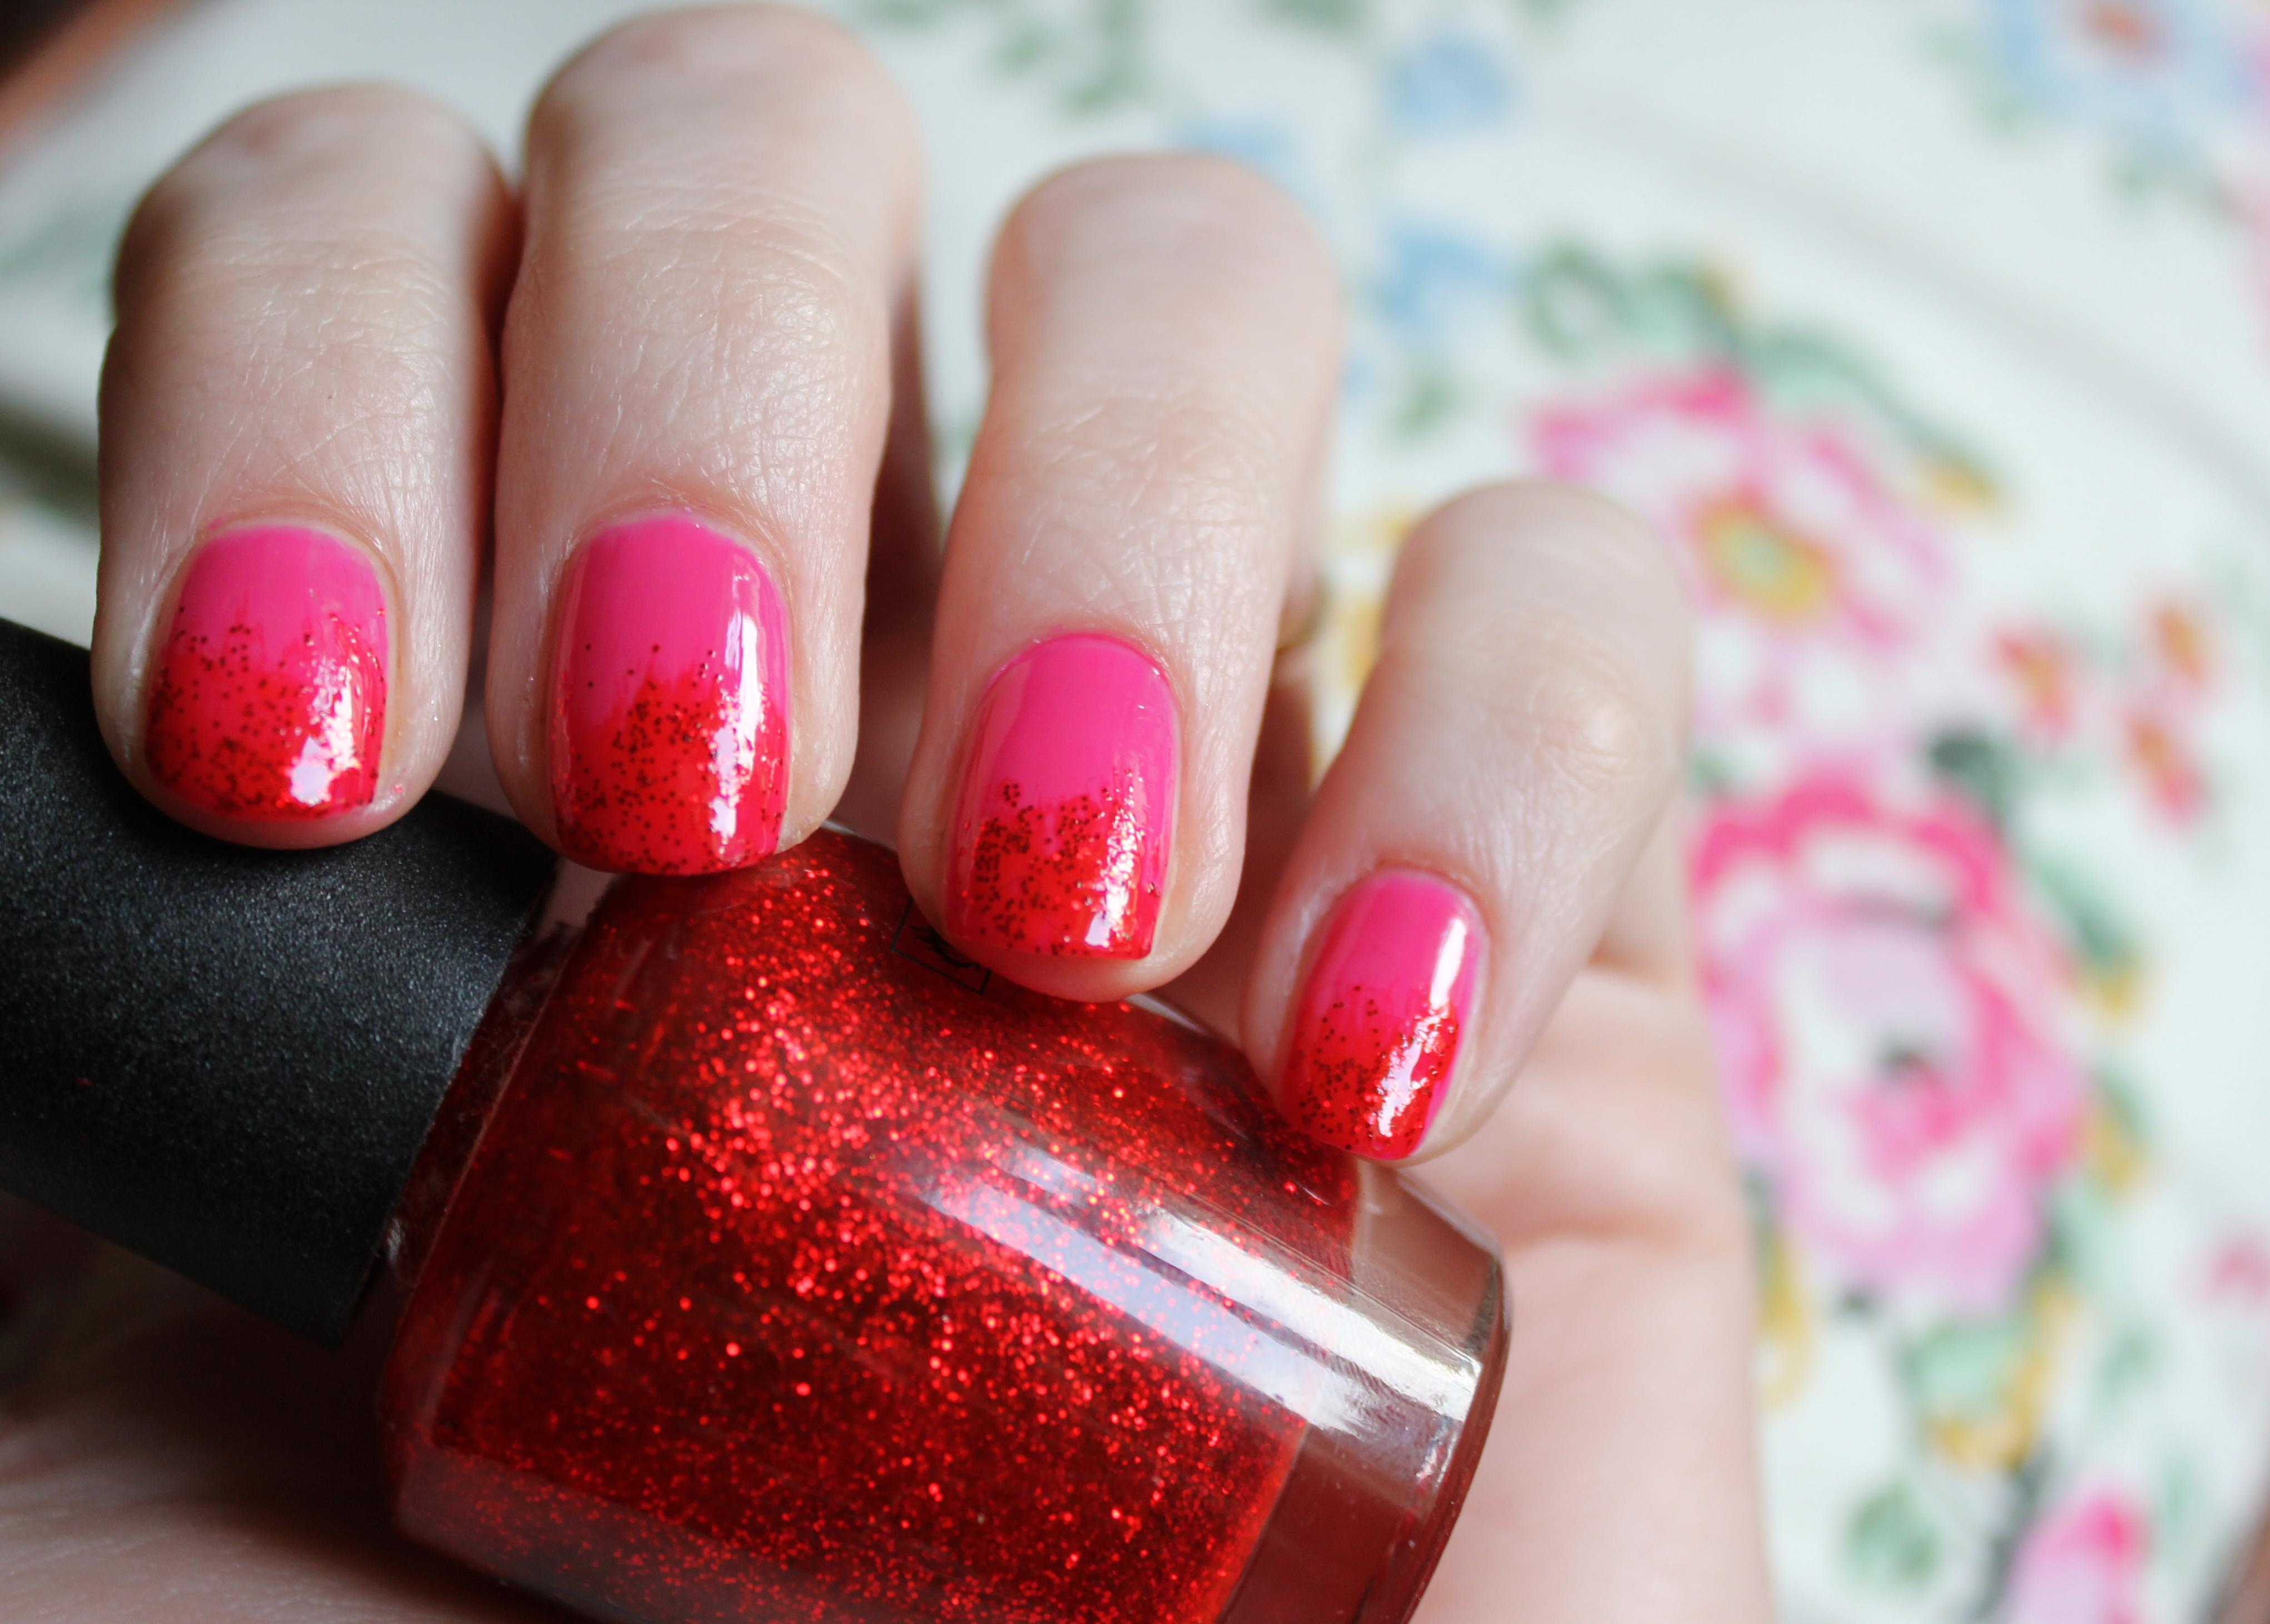 cassiefairy pink and red ombre manicure tutorial tips